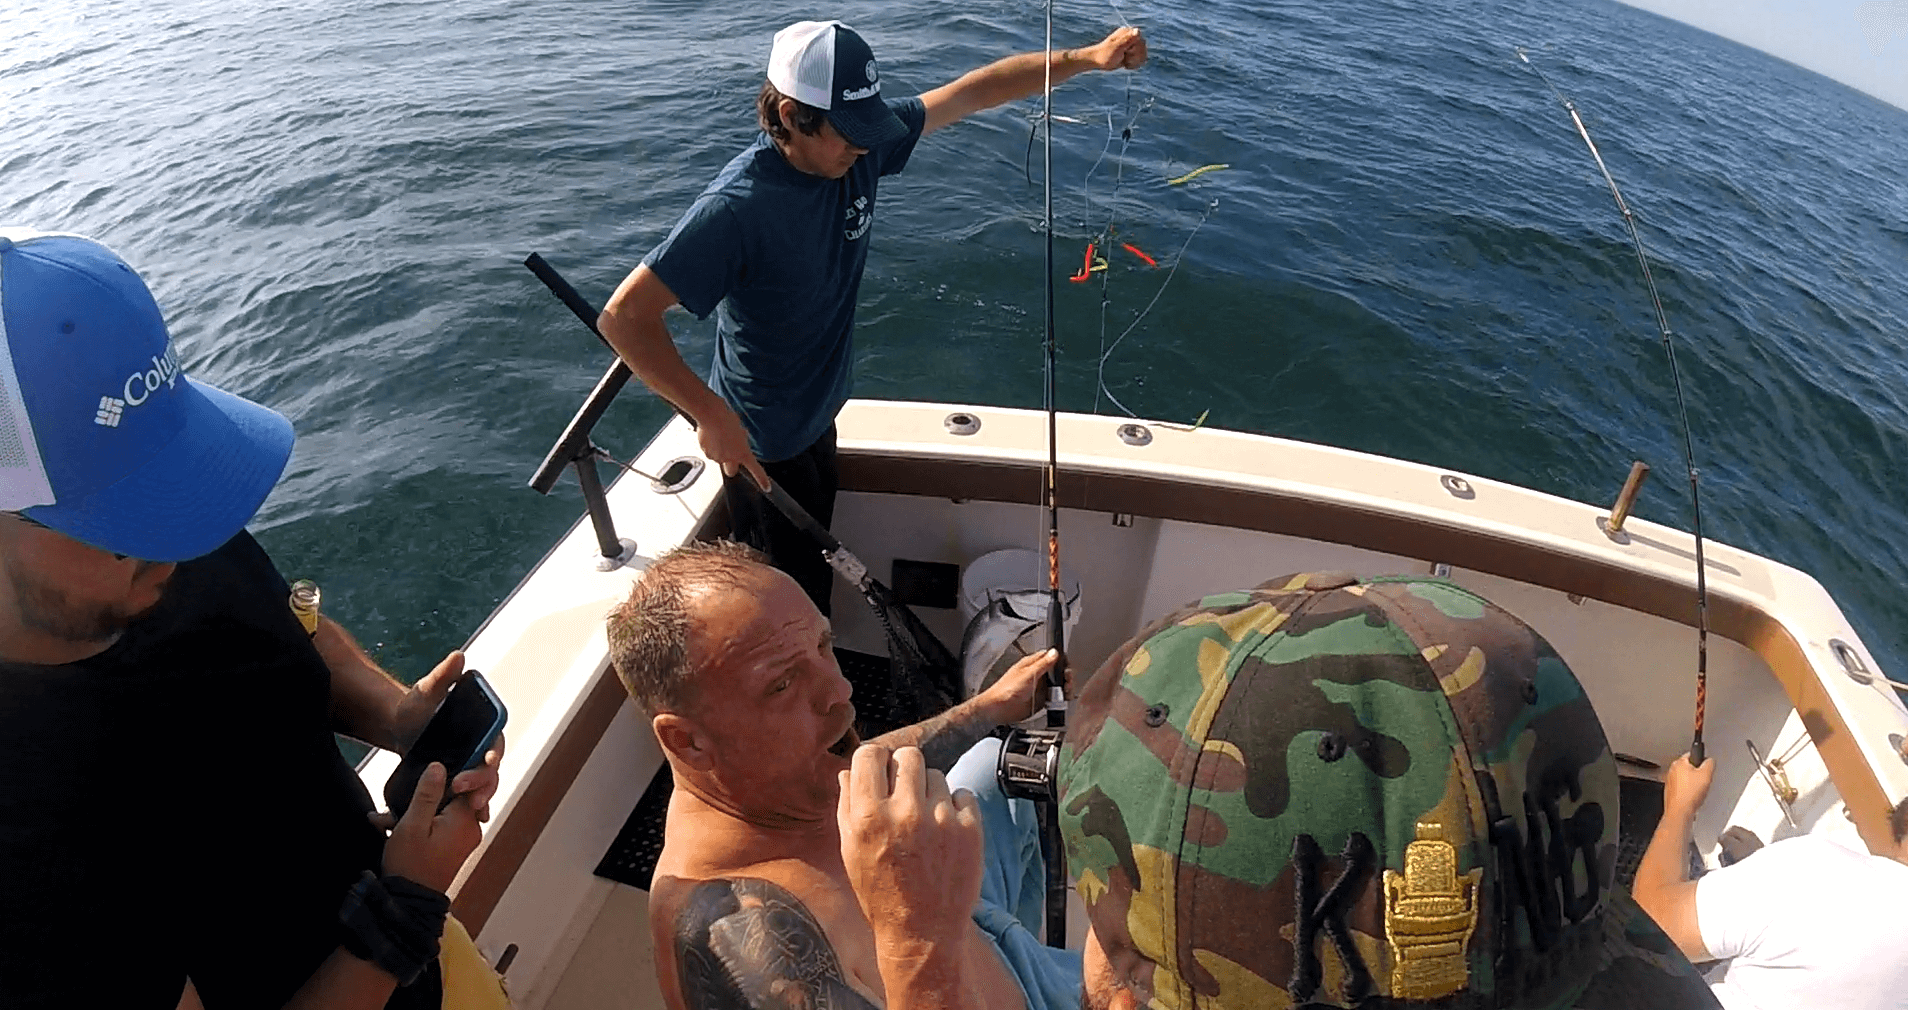 Rhode Island Striped Bass charter on the Aces Wild june 9, 2020